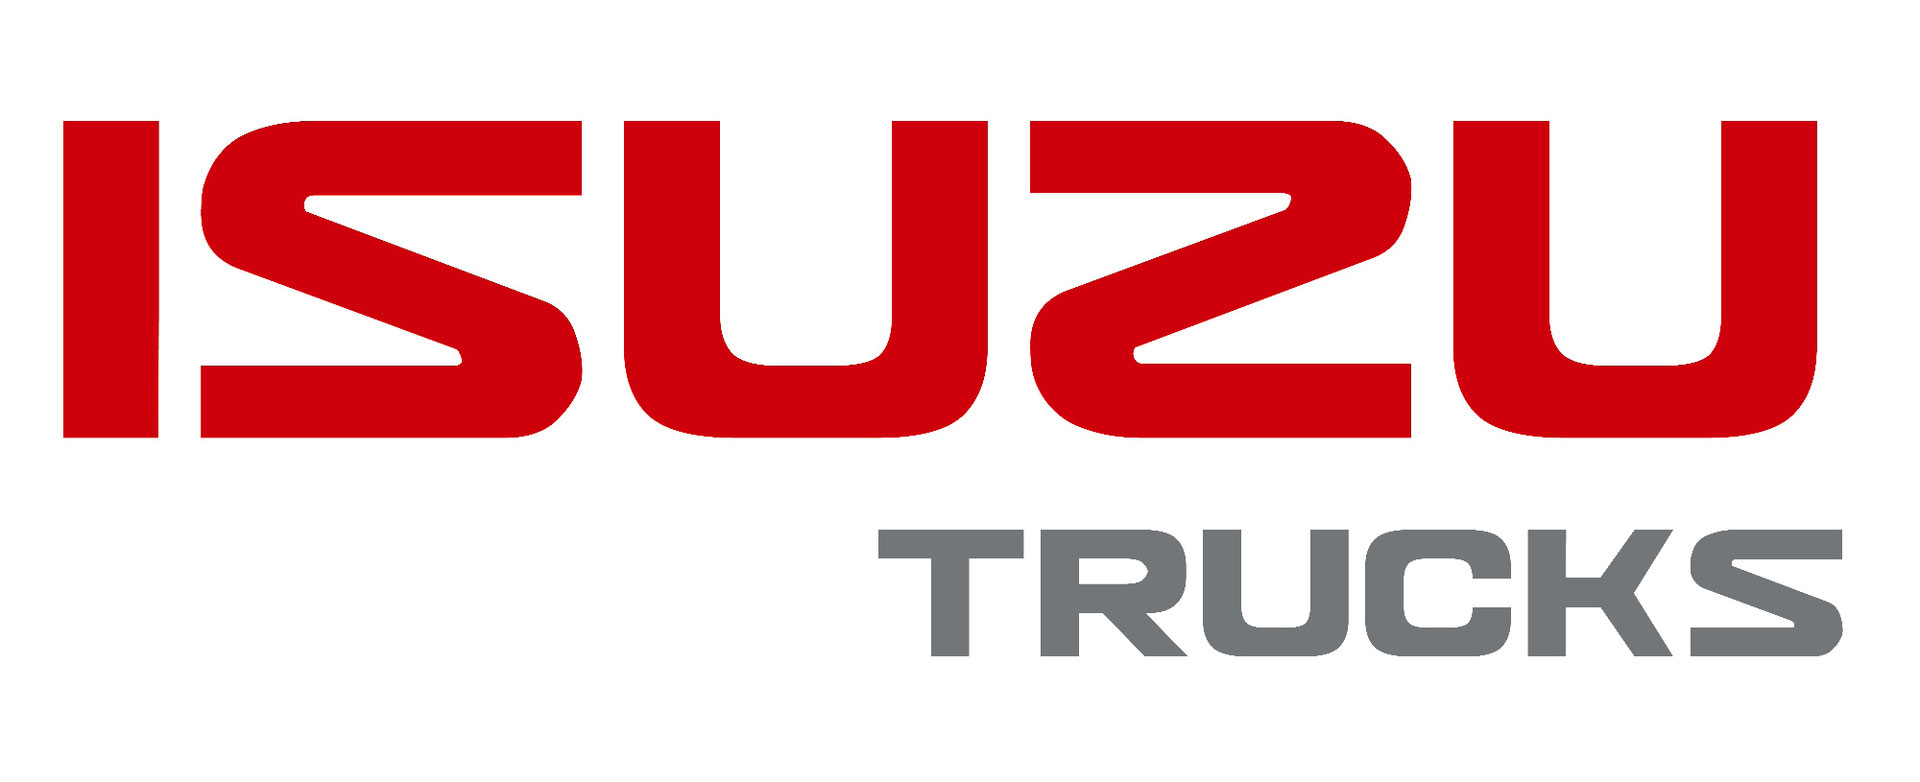 100+ Isuzu Npr Repair Manual Pdf – yasminroohi